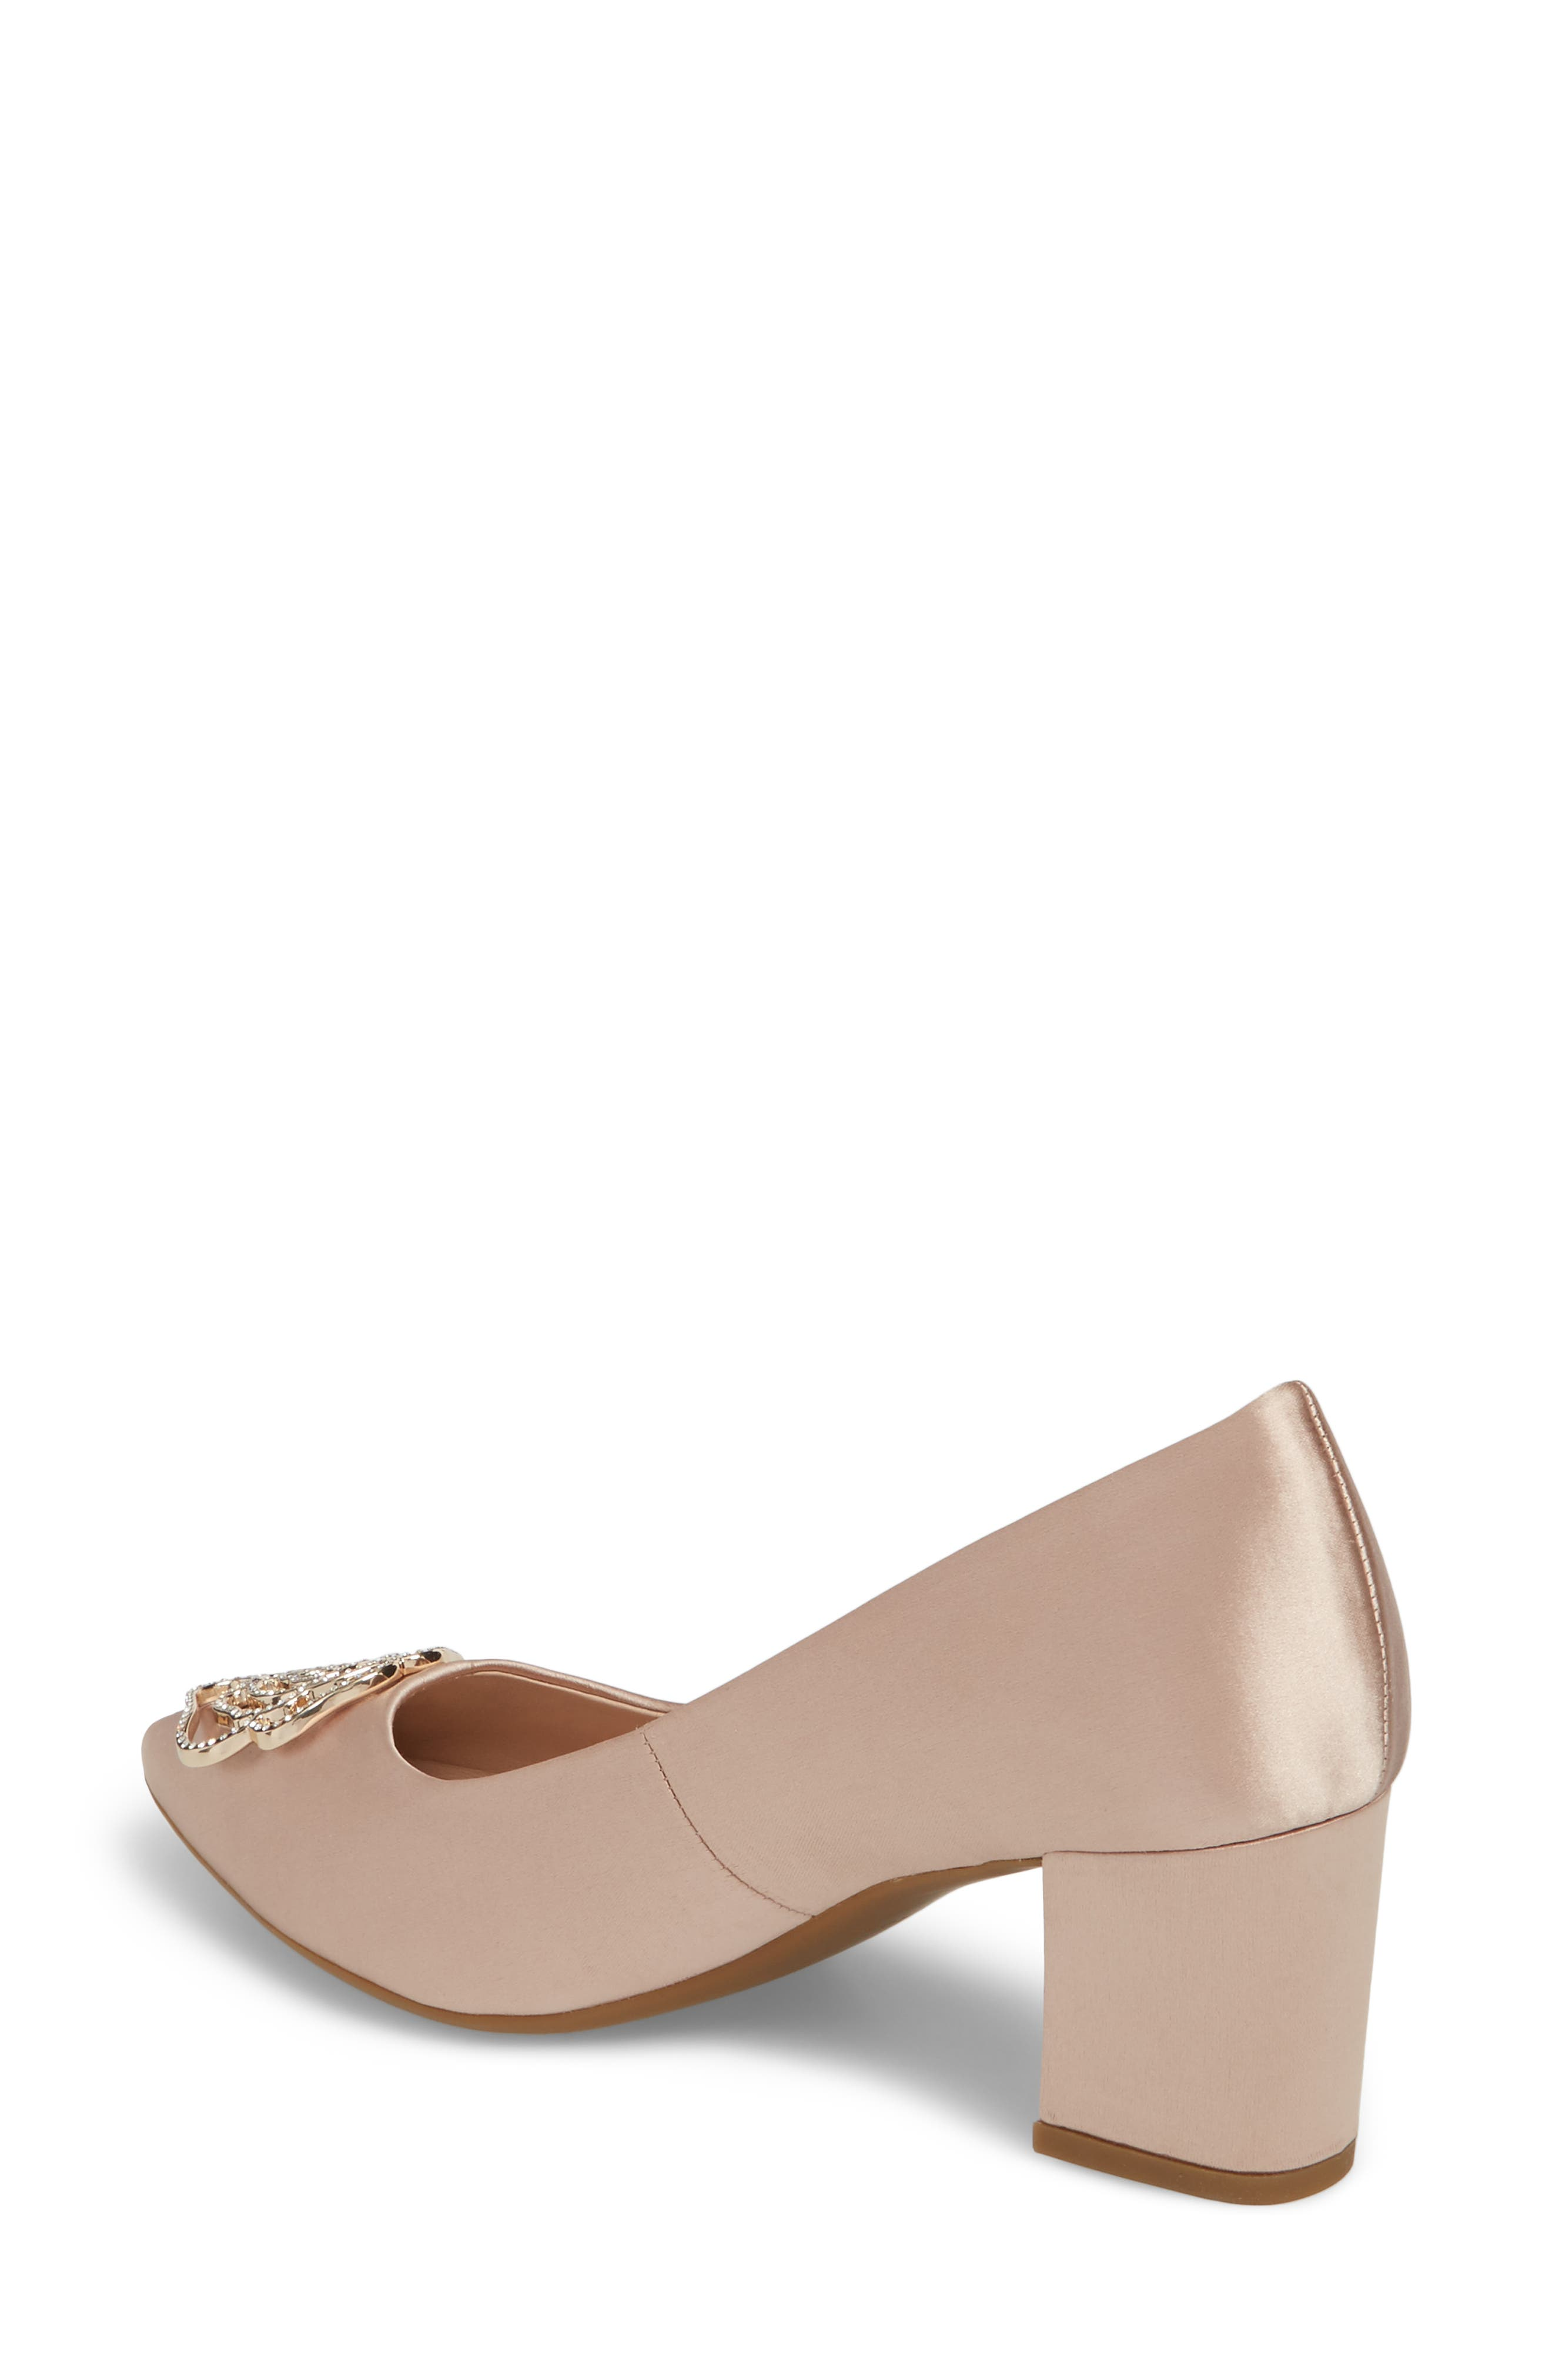 Maci Pump,                             Alternate thumbnail 2, color,                             Blush Satin Fabric